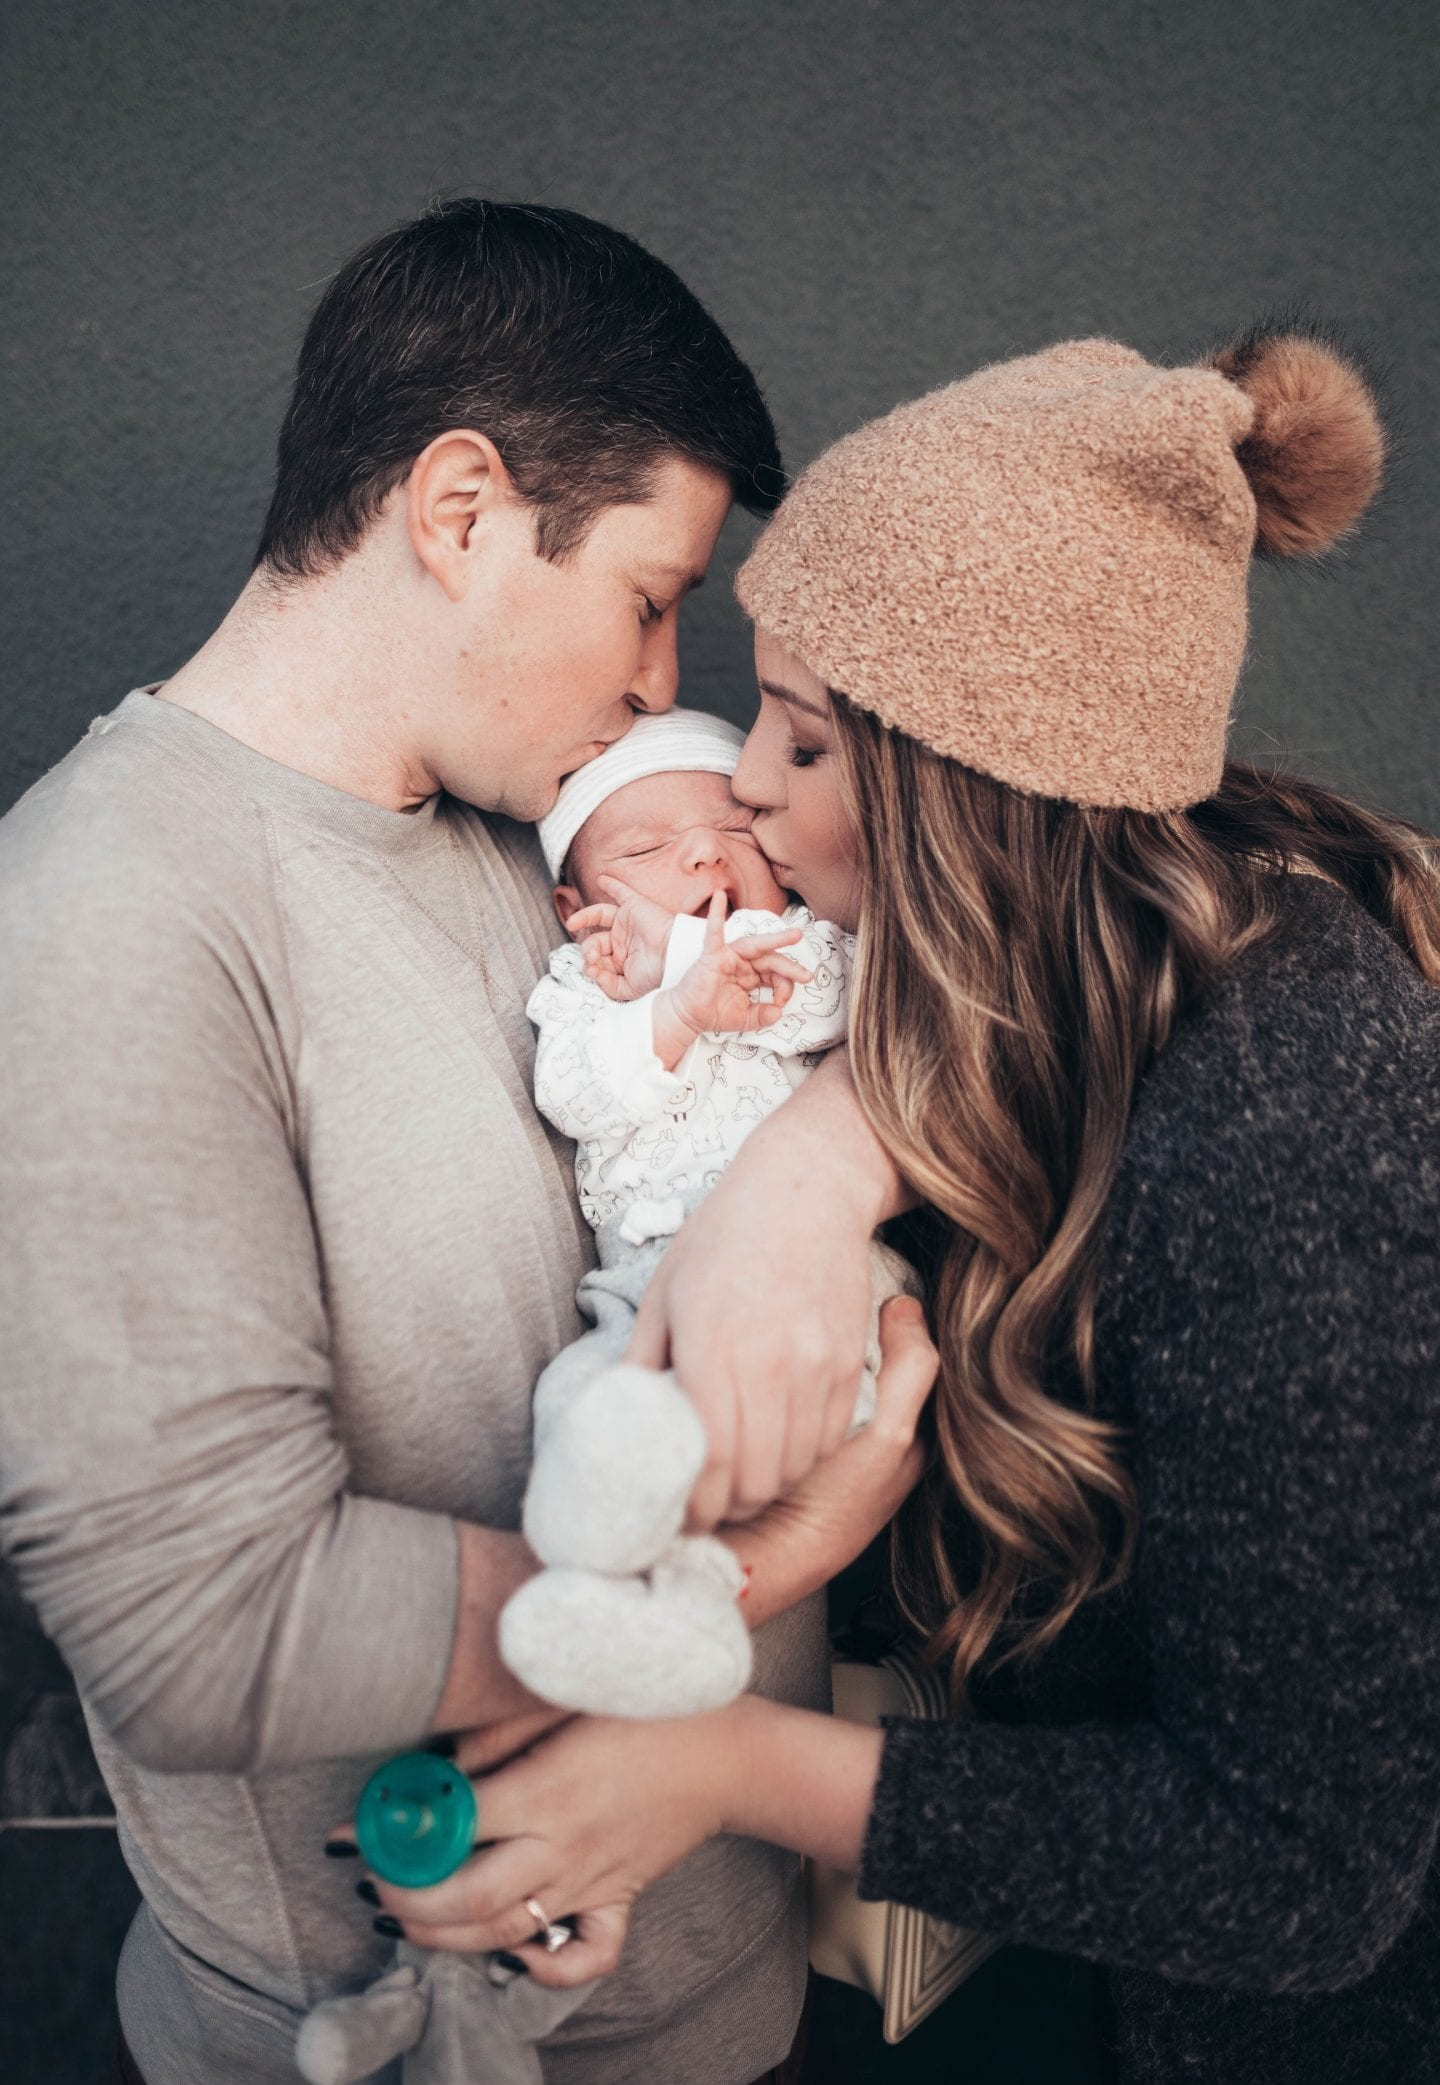 70% Off Carter's Clothing Sale by popular San Francisco lifestyle blog, Just Add Glam: image of a mom and dad holding and kissing their newborn baby.